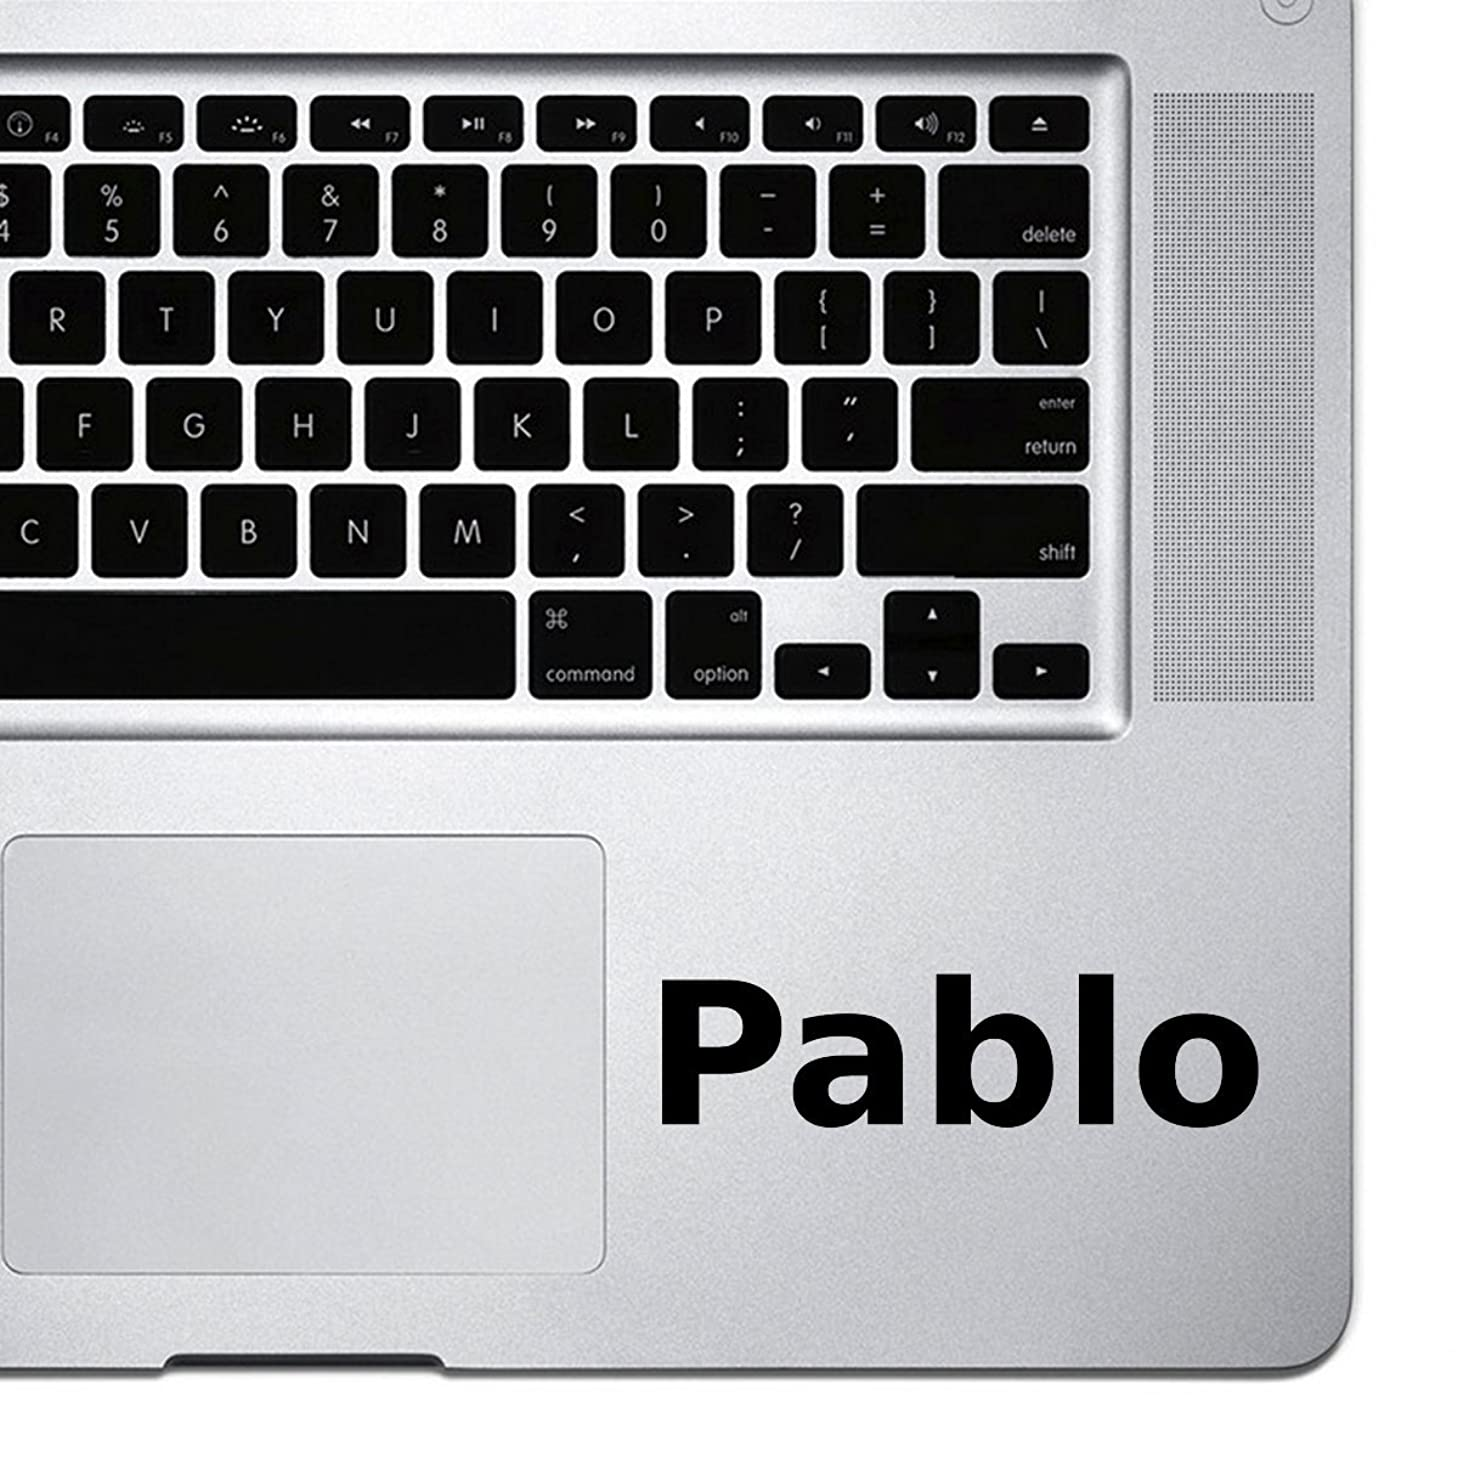 (2x) StickAny Palm Series Pablo Sticker for Macbook Pro, Chromebook, and Laptops (Black)